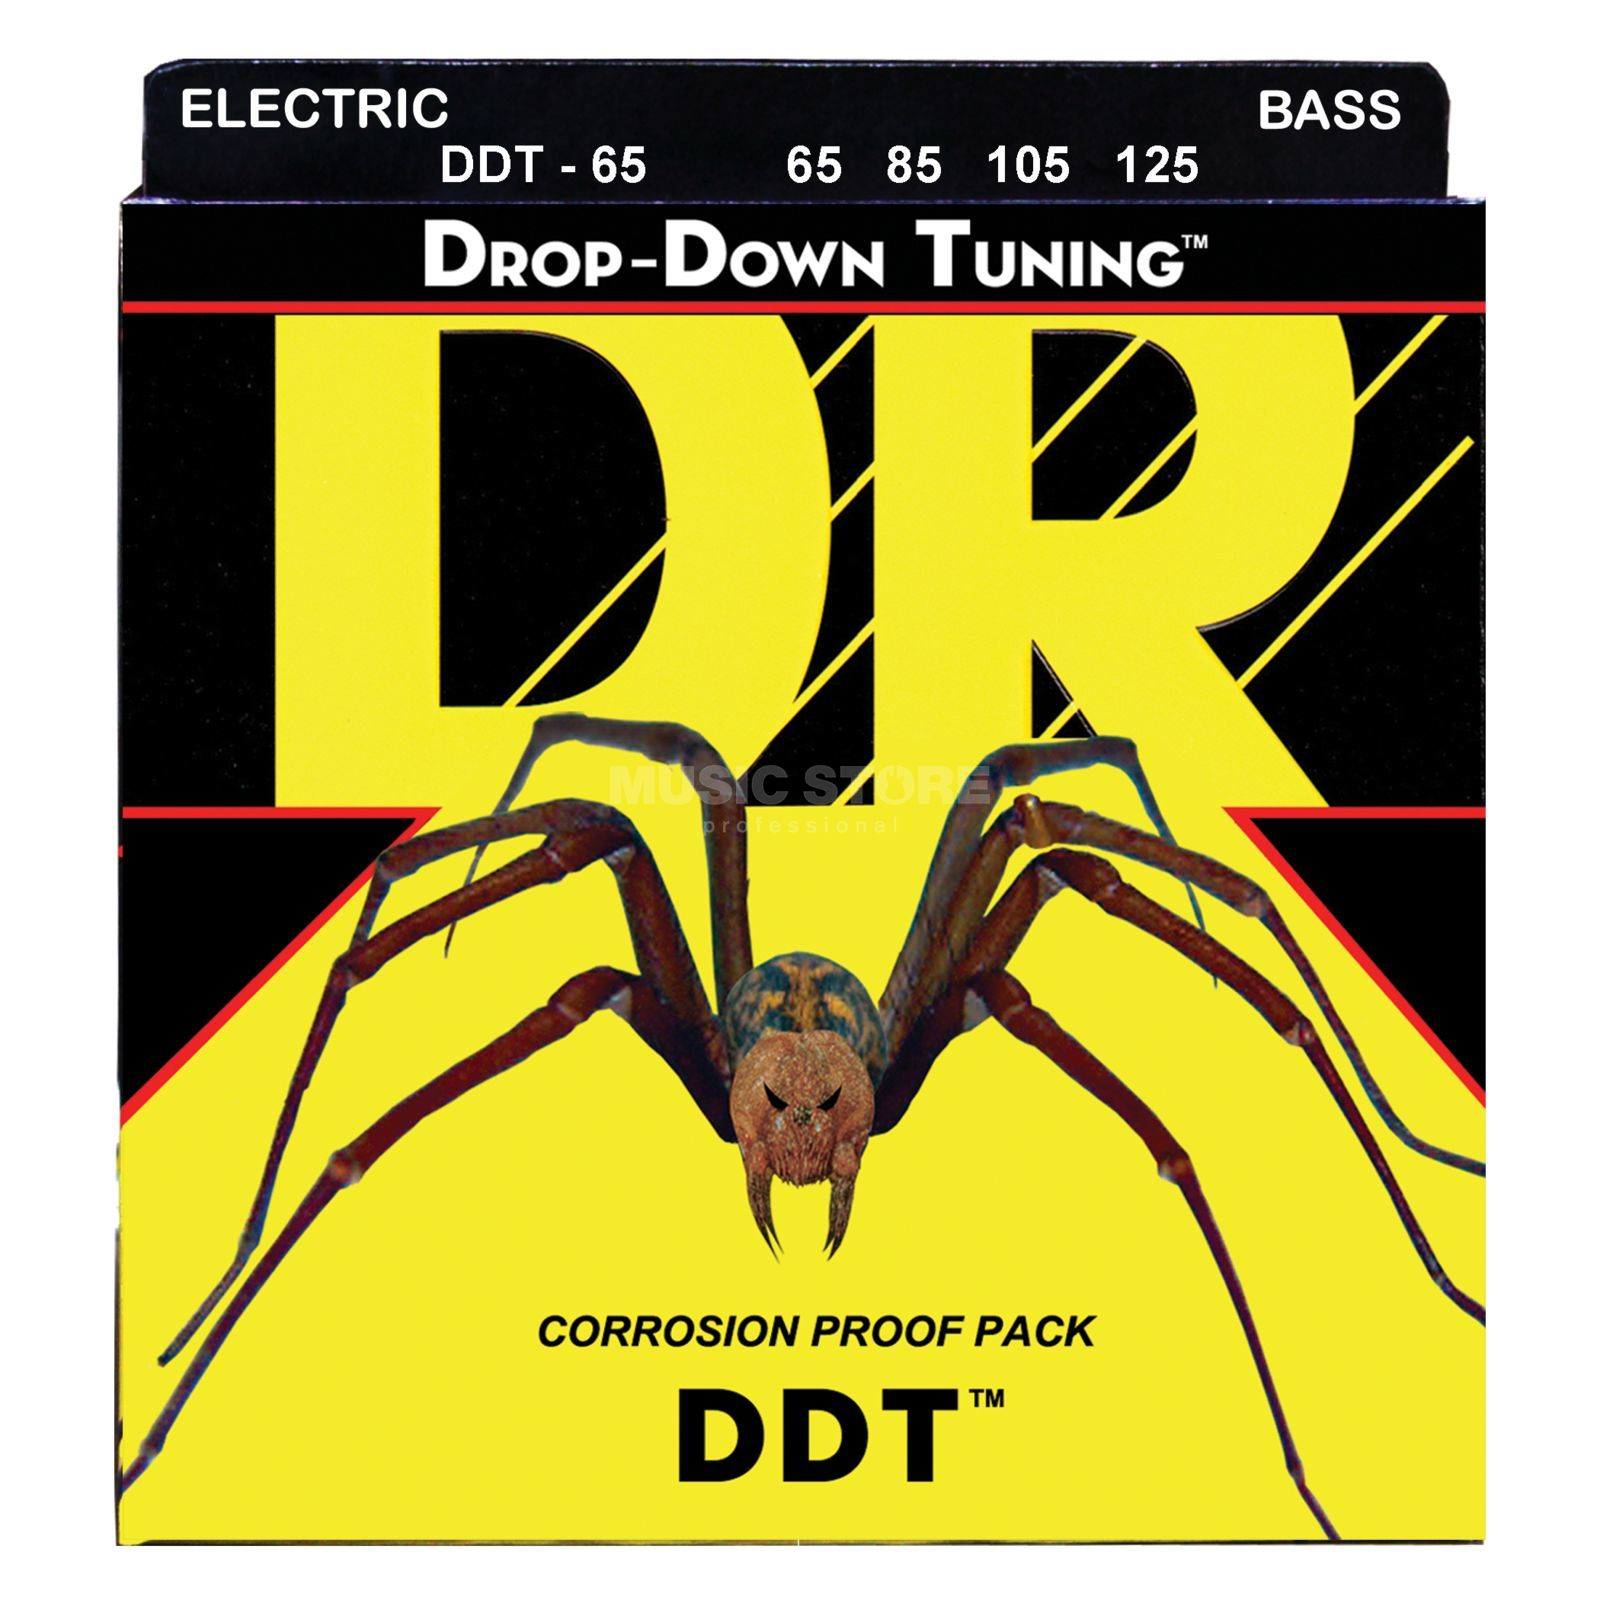 DR 4 Bass Strings 65-125 Drop-Down Tuning DDT-65 Product Image